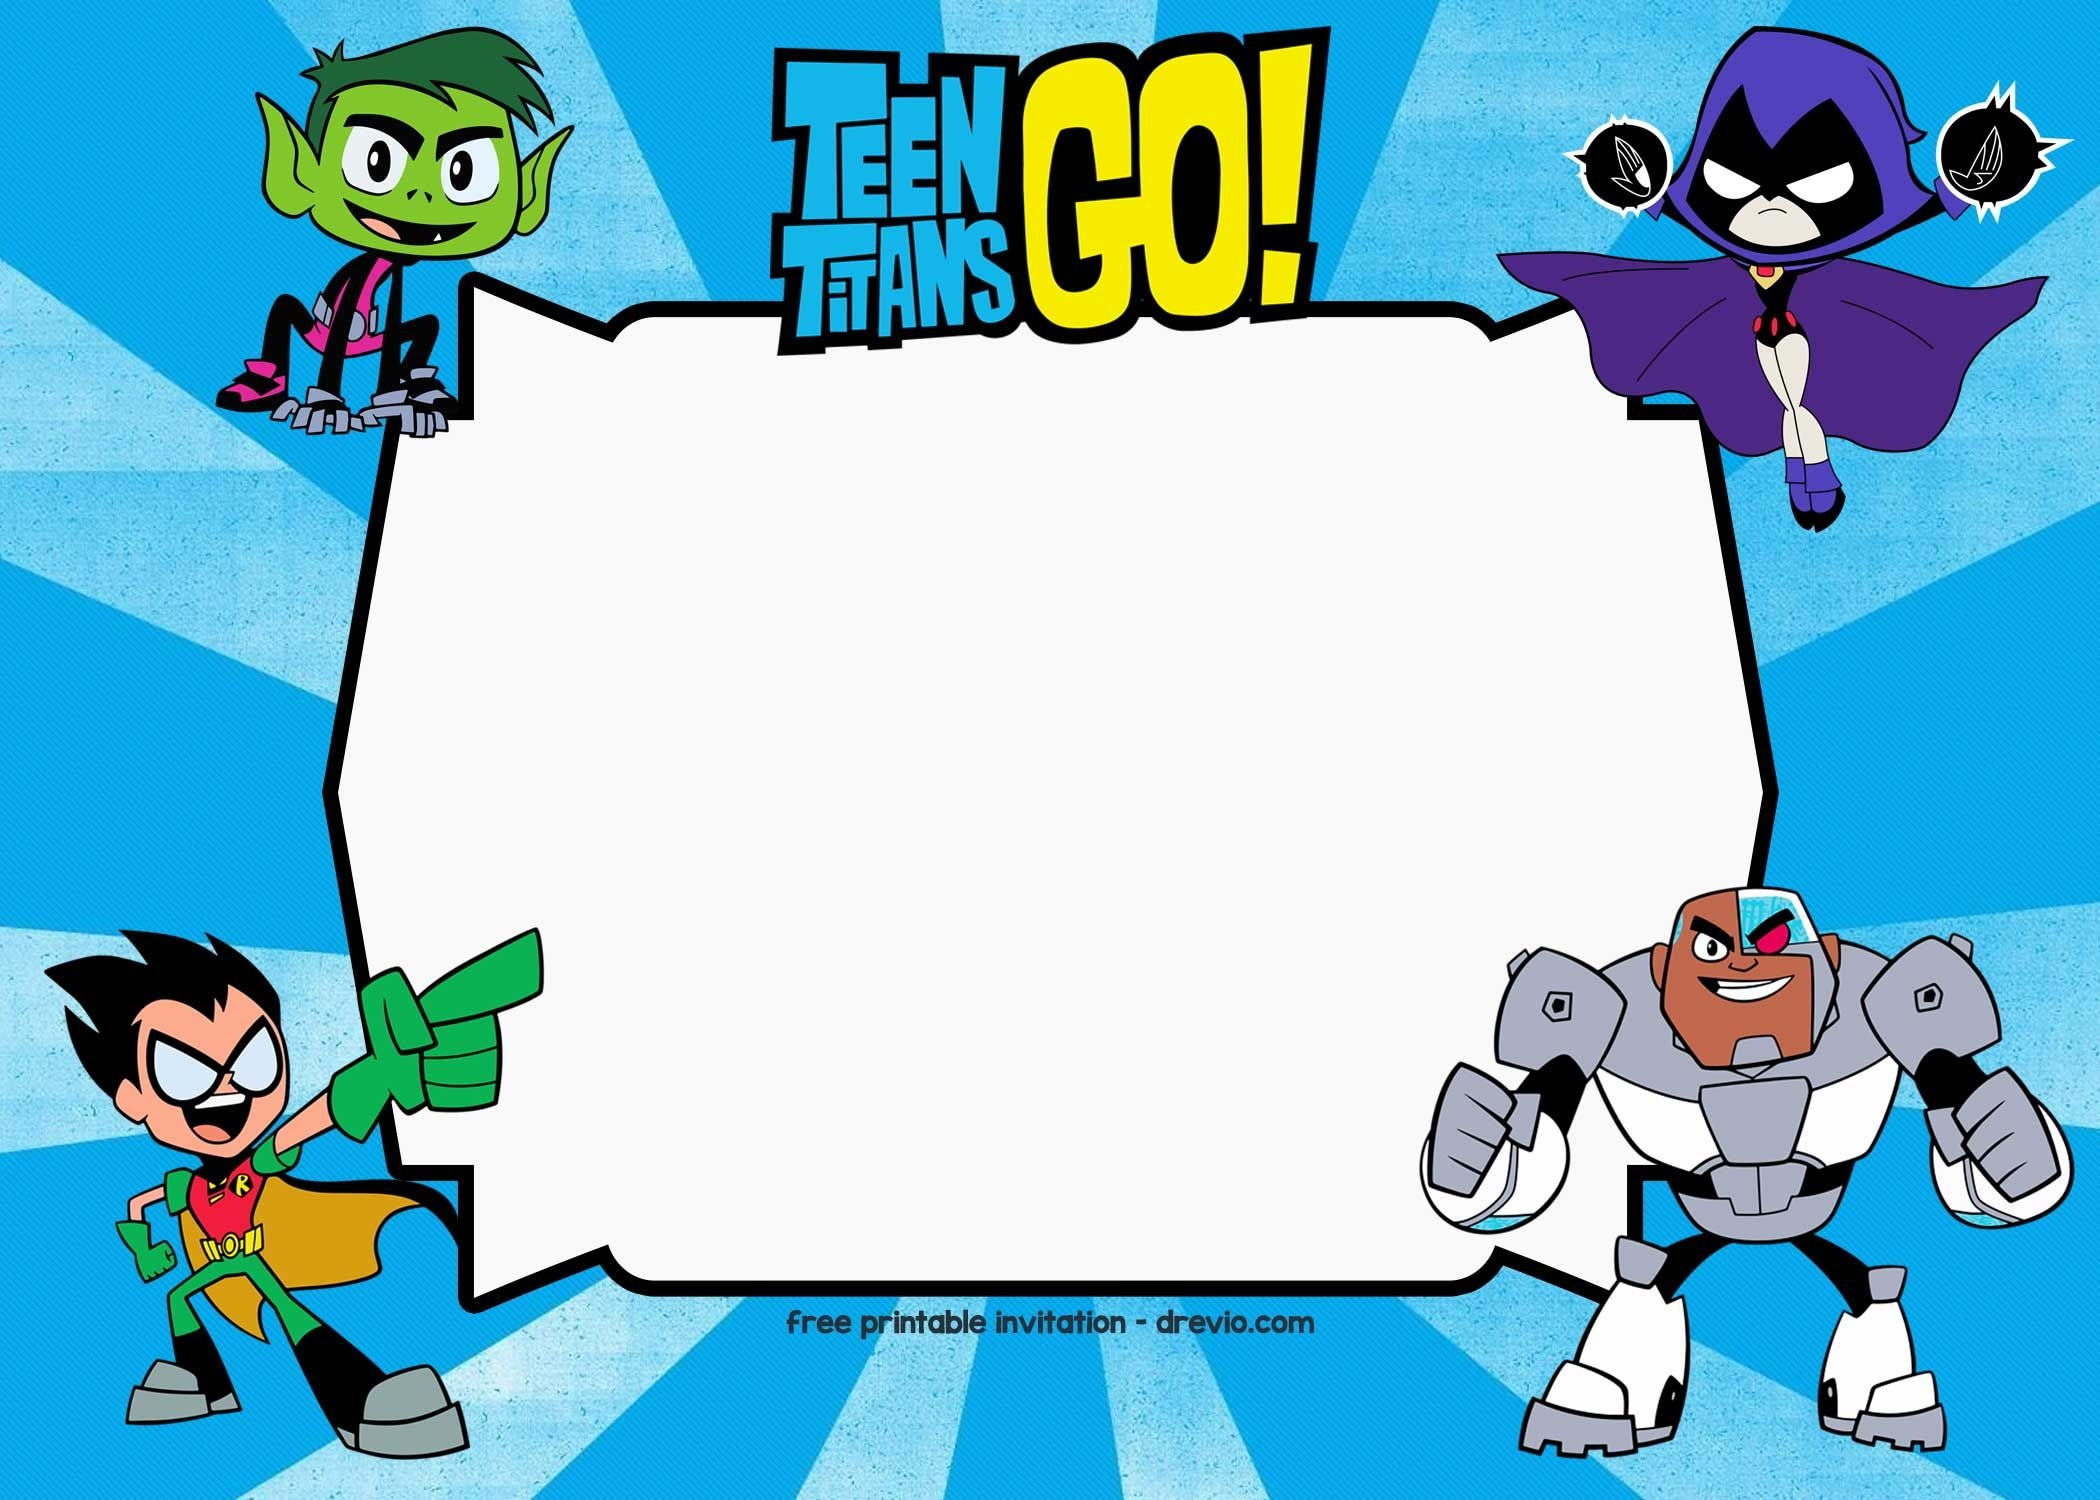 Free Printable Teen Titans Go Birthday Invitation | Free - Free Printable Superhero Birthday Invitation Templates